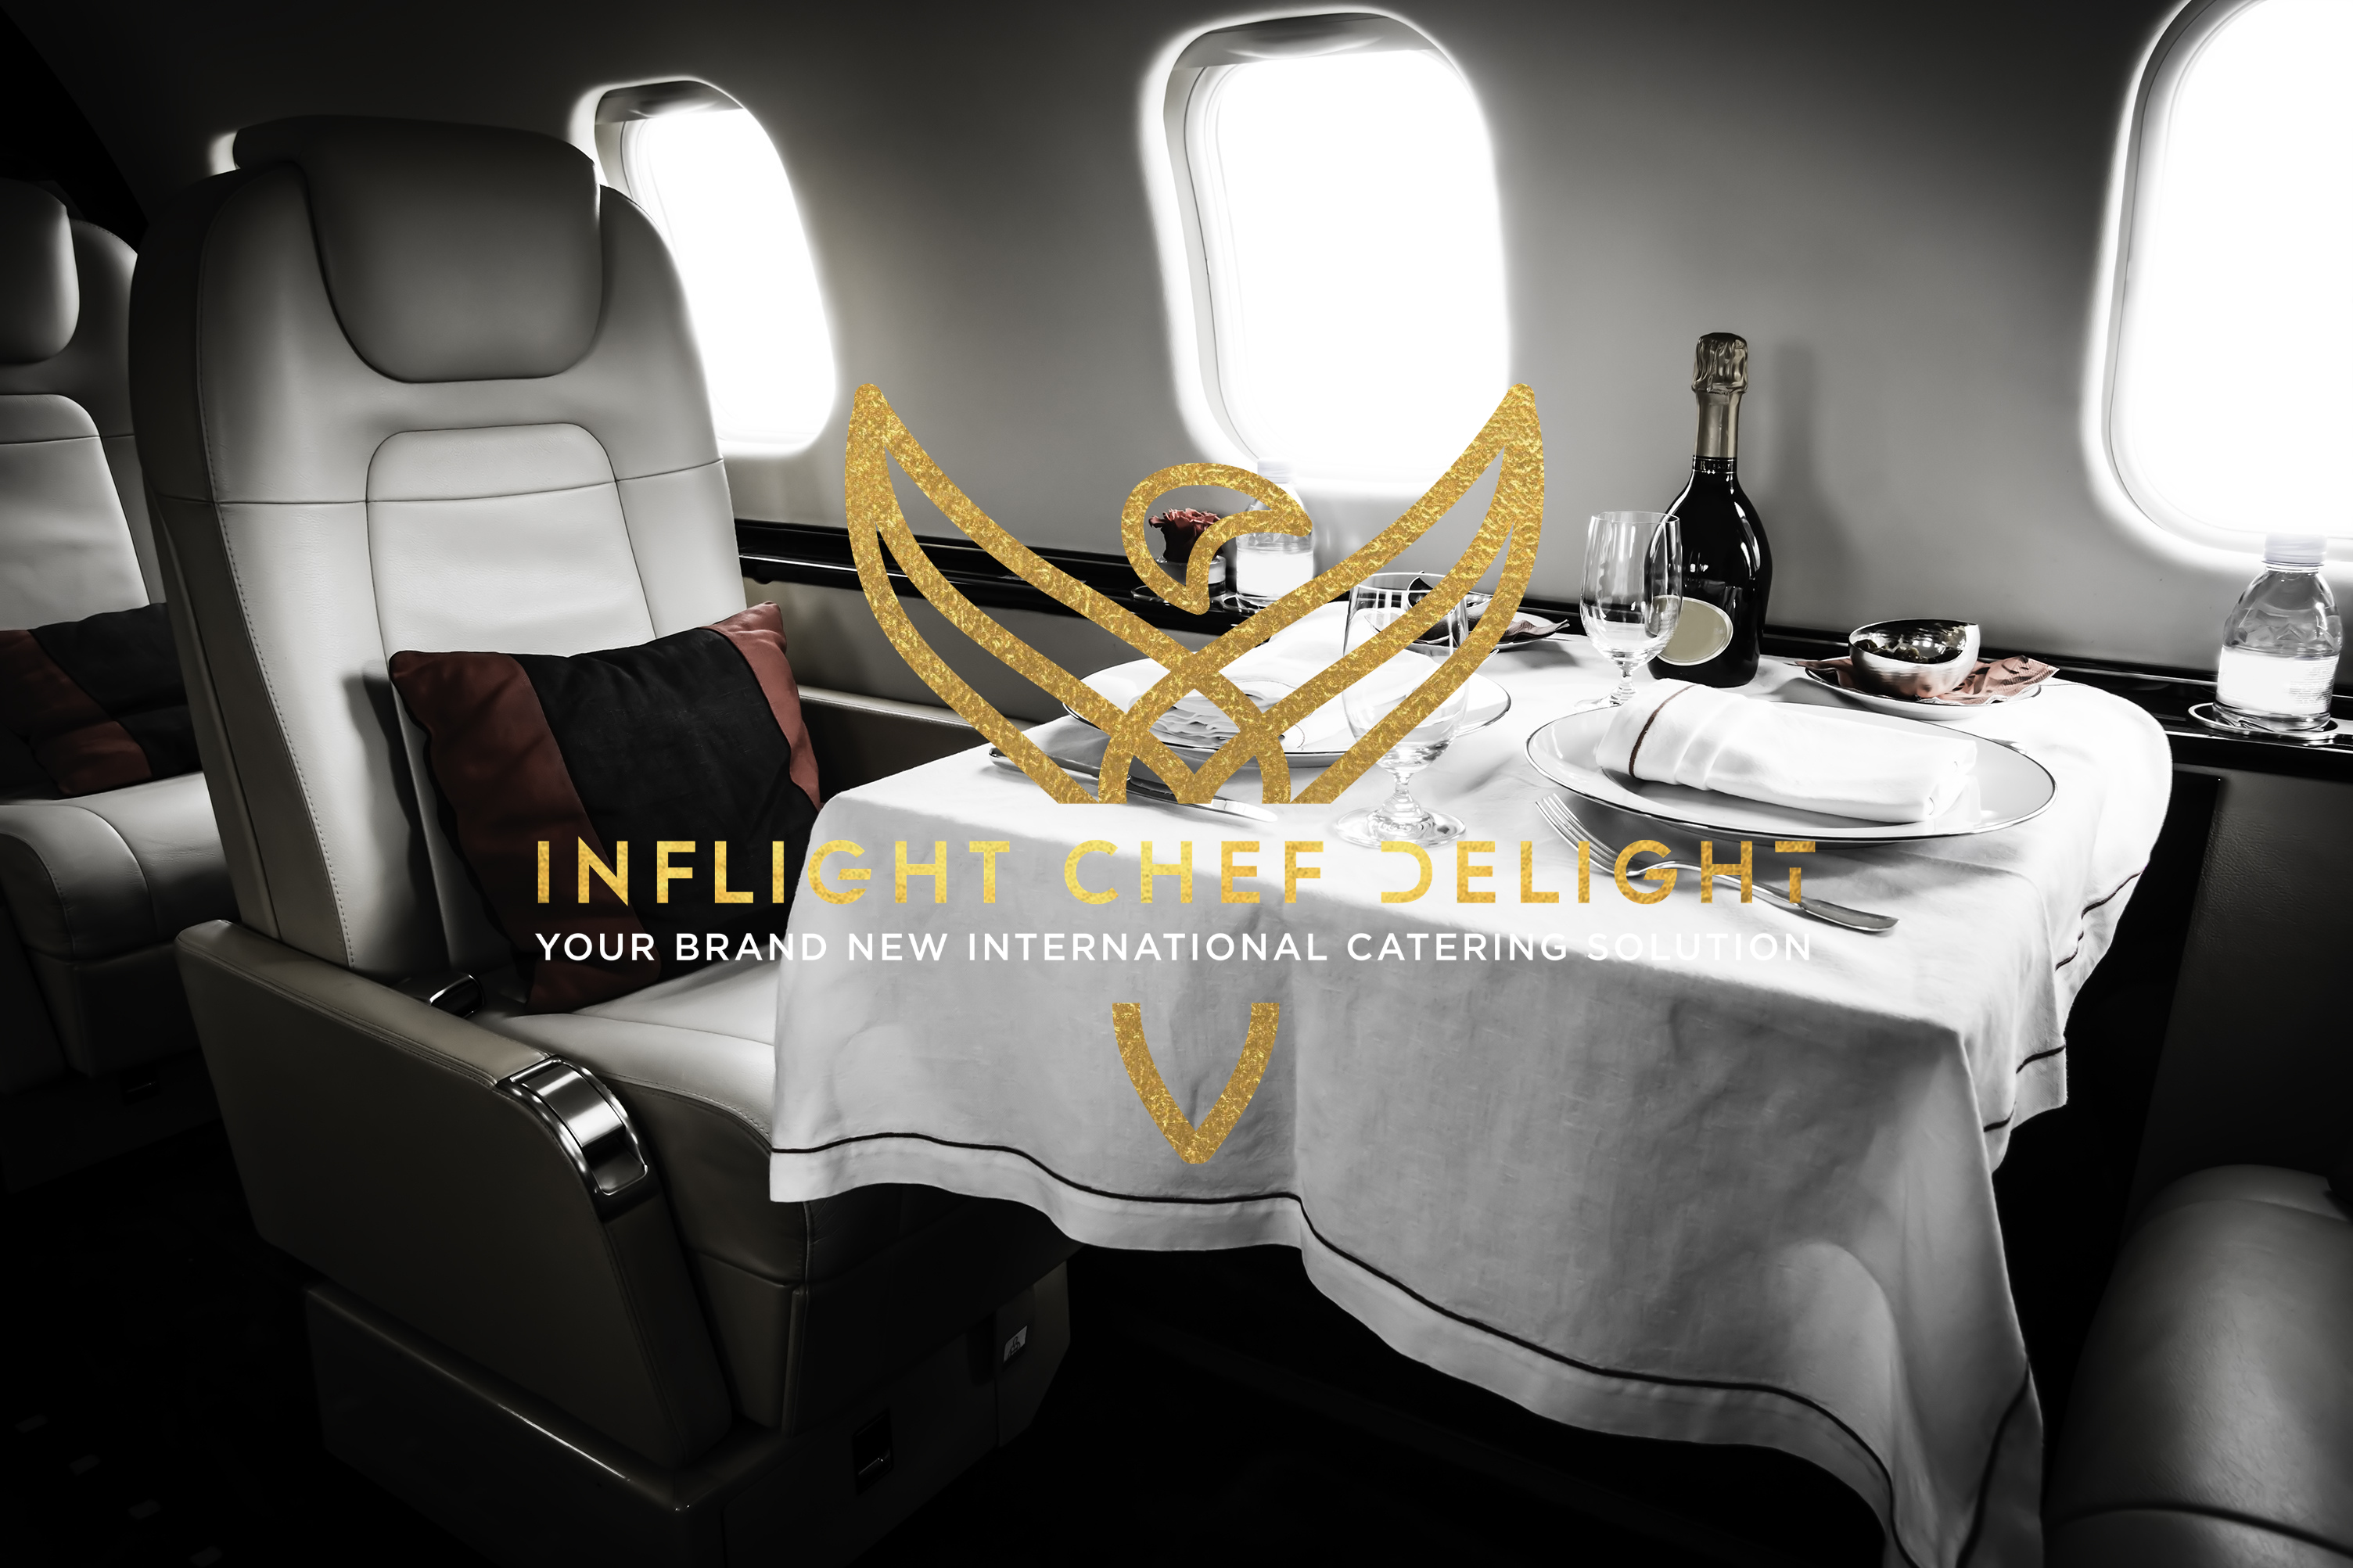 Inflight Chef Delight protects clients from COVID-19